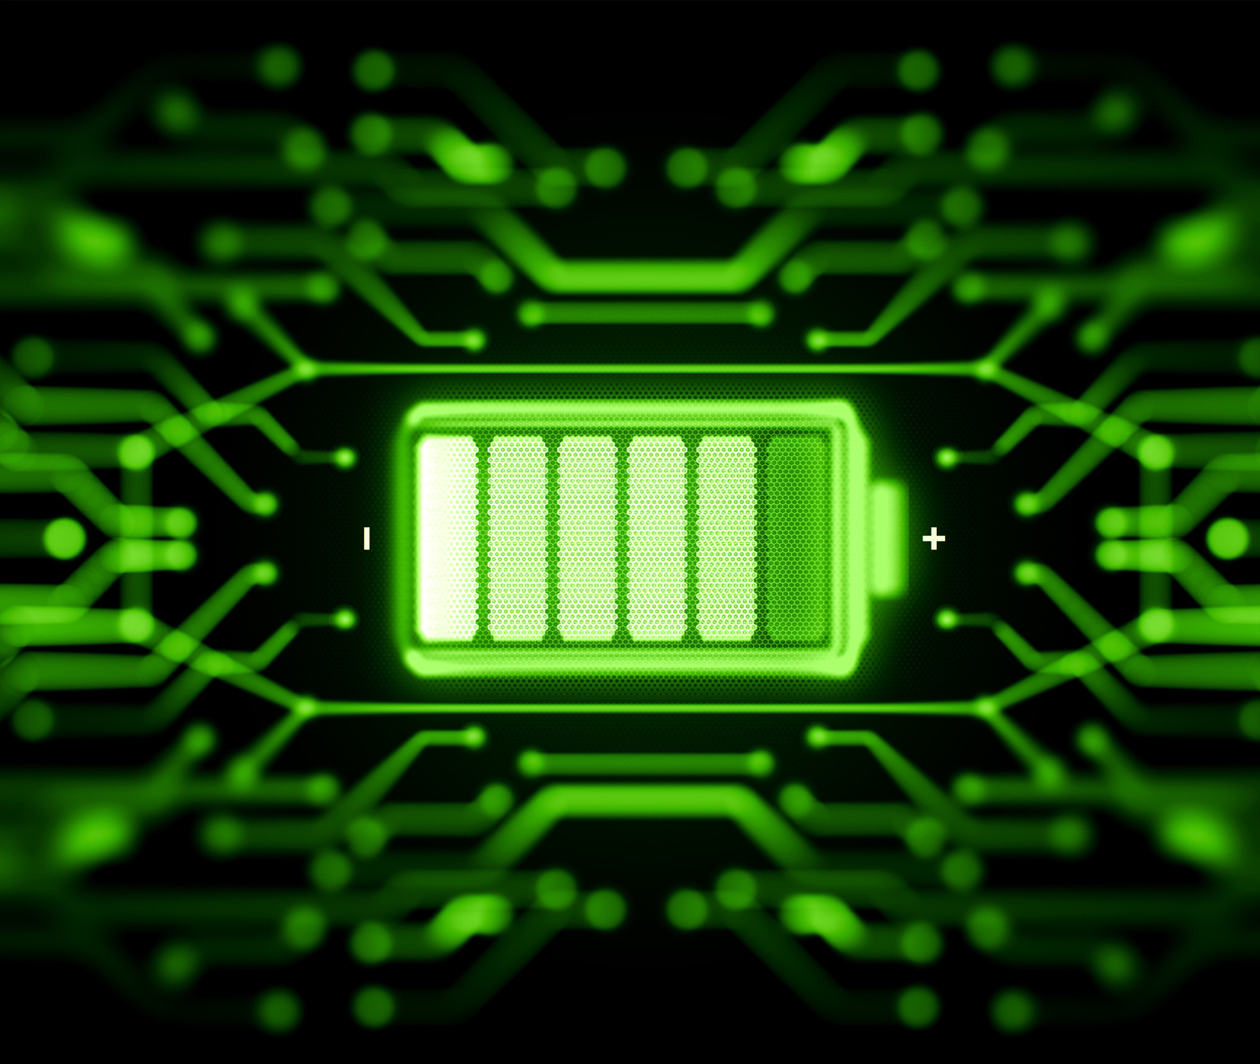 Battery Storage: Understanding the Battery Revolution